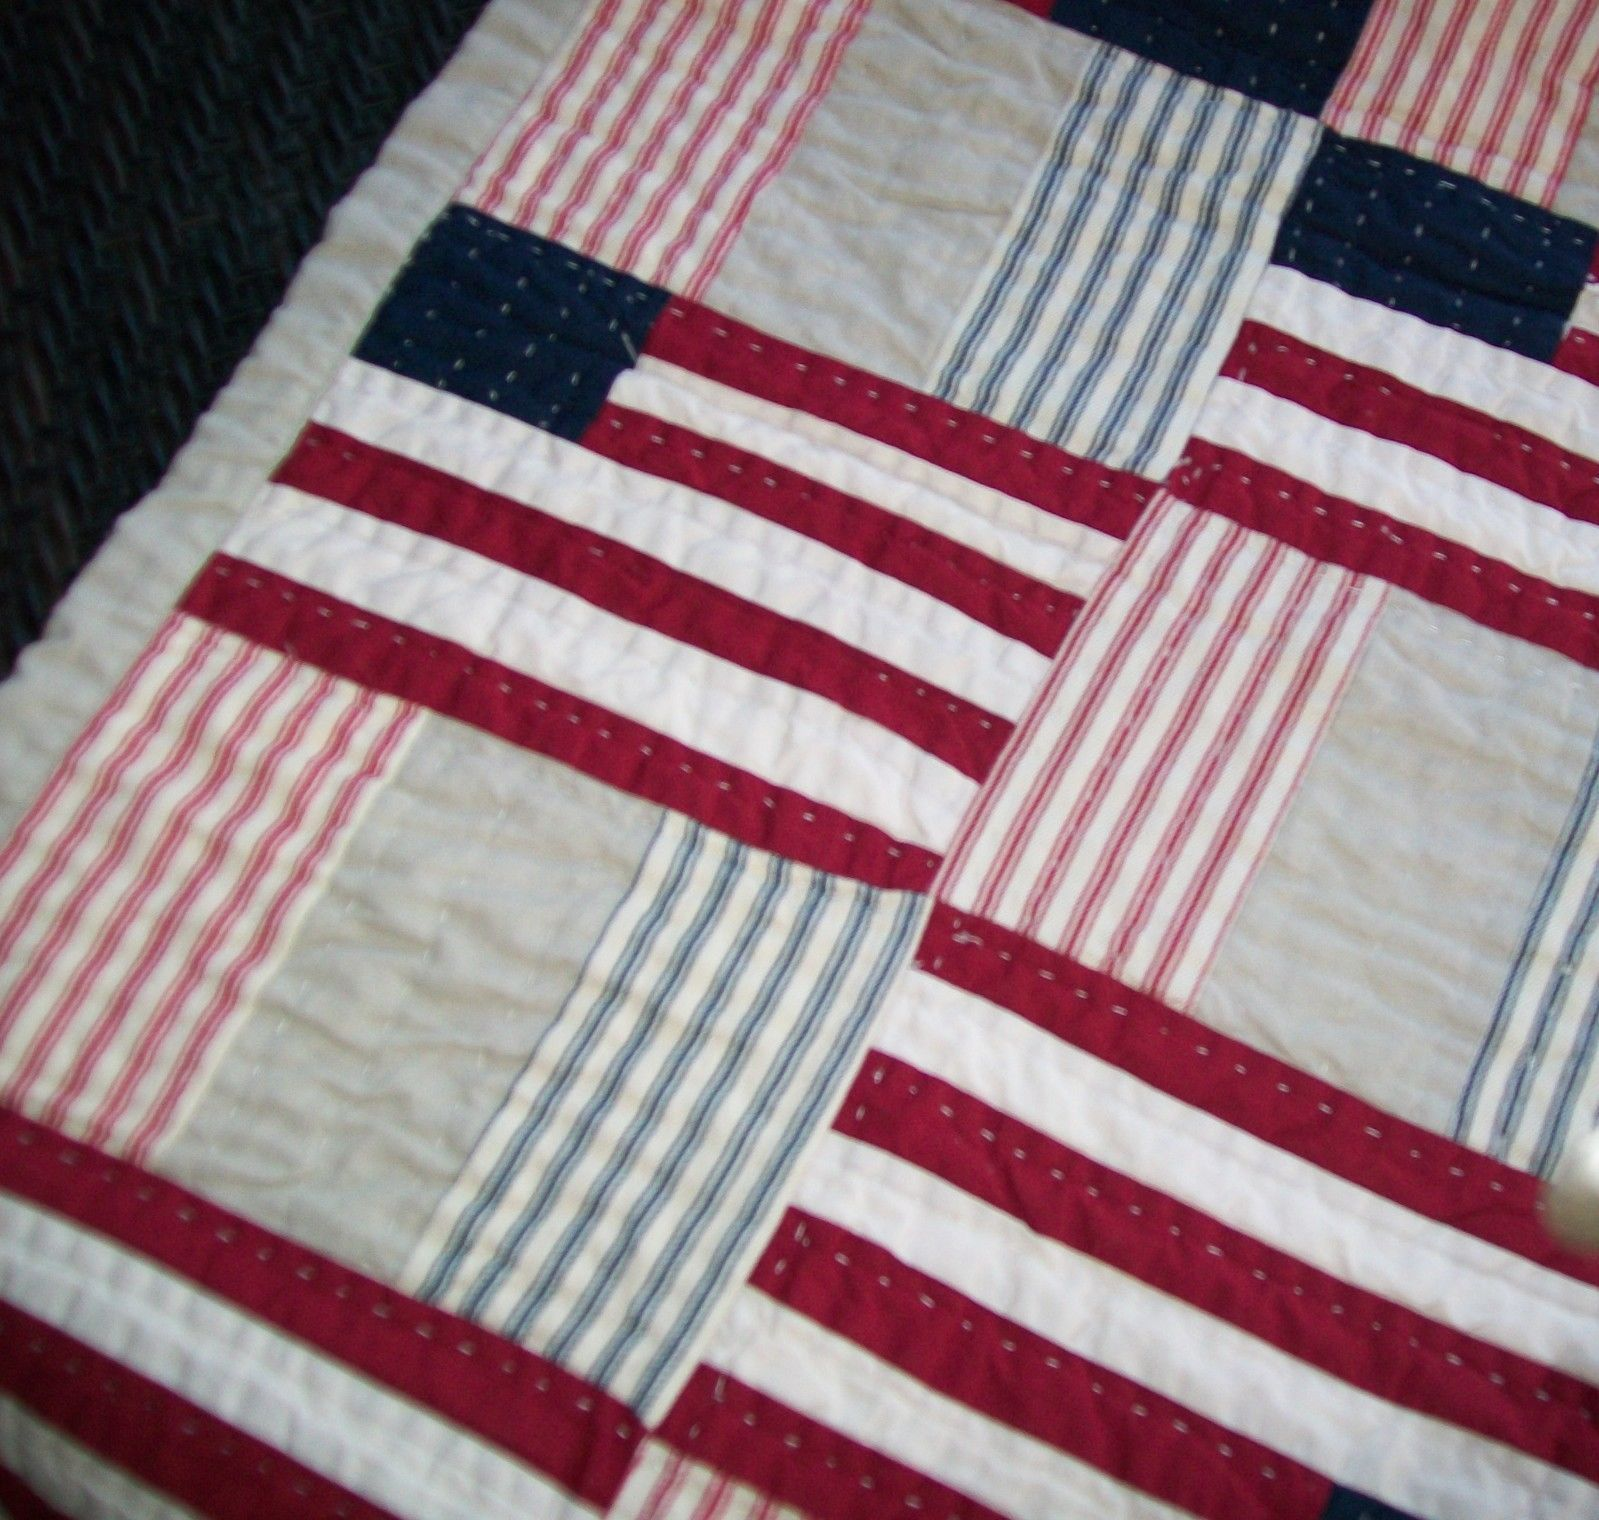 Pottery Barn Americana American Flag Quilted Table Runner 18.5 x 96 Euc - Table Runners